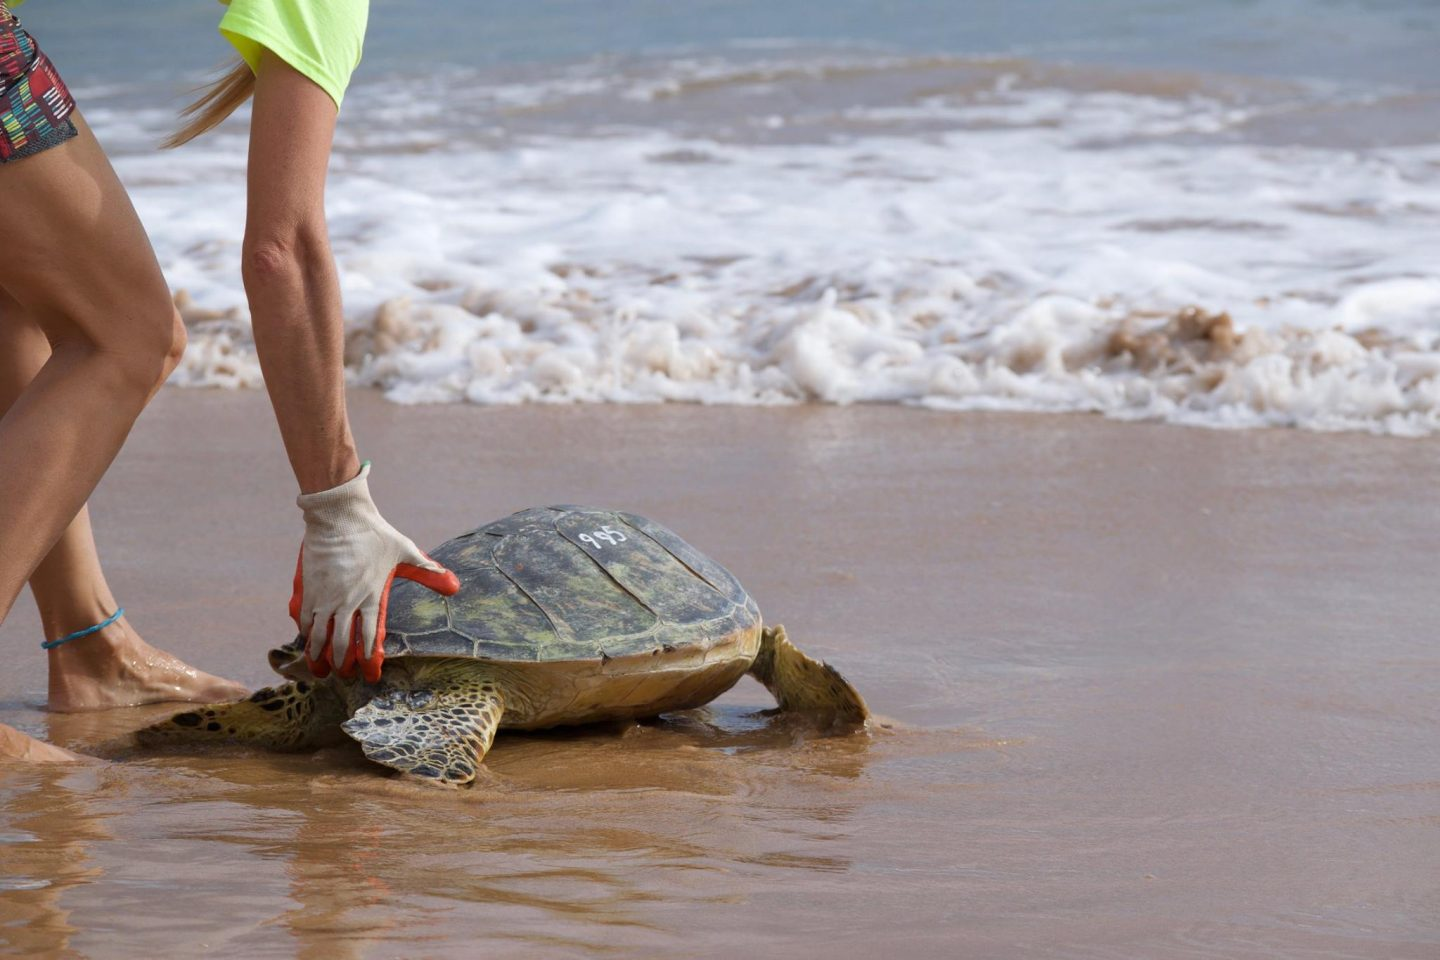 maui ocean center, things to do in maui, sea turtles